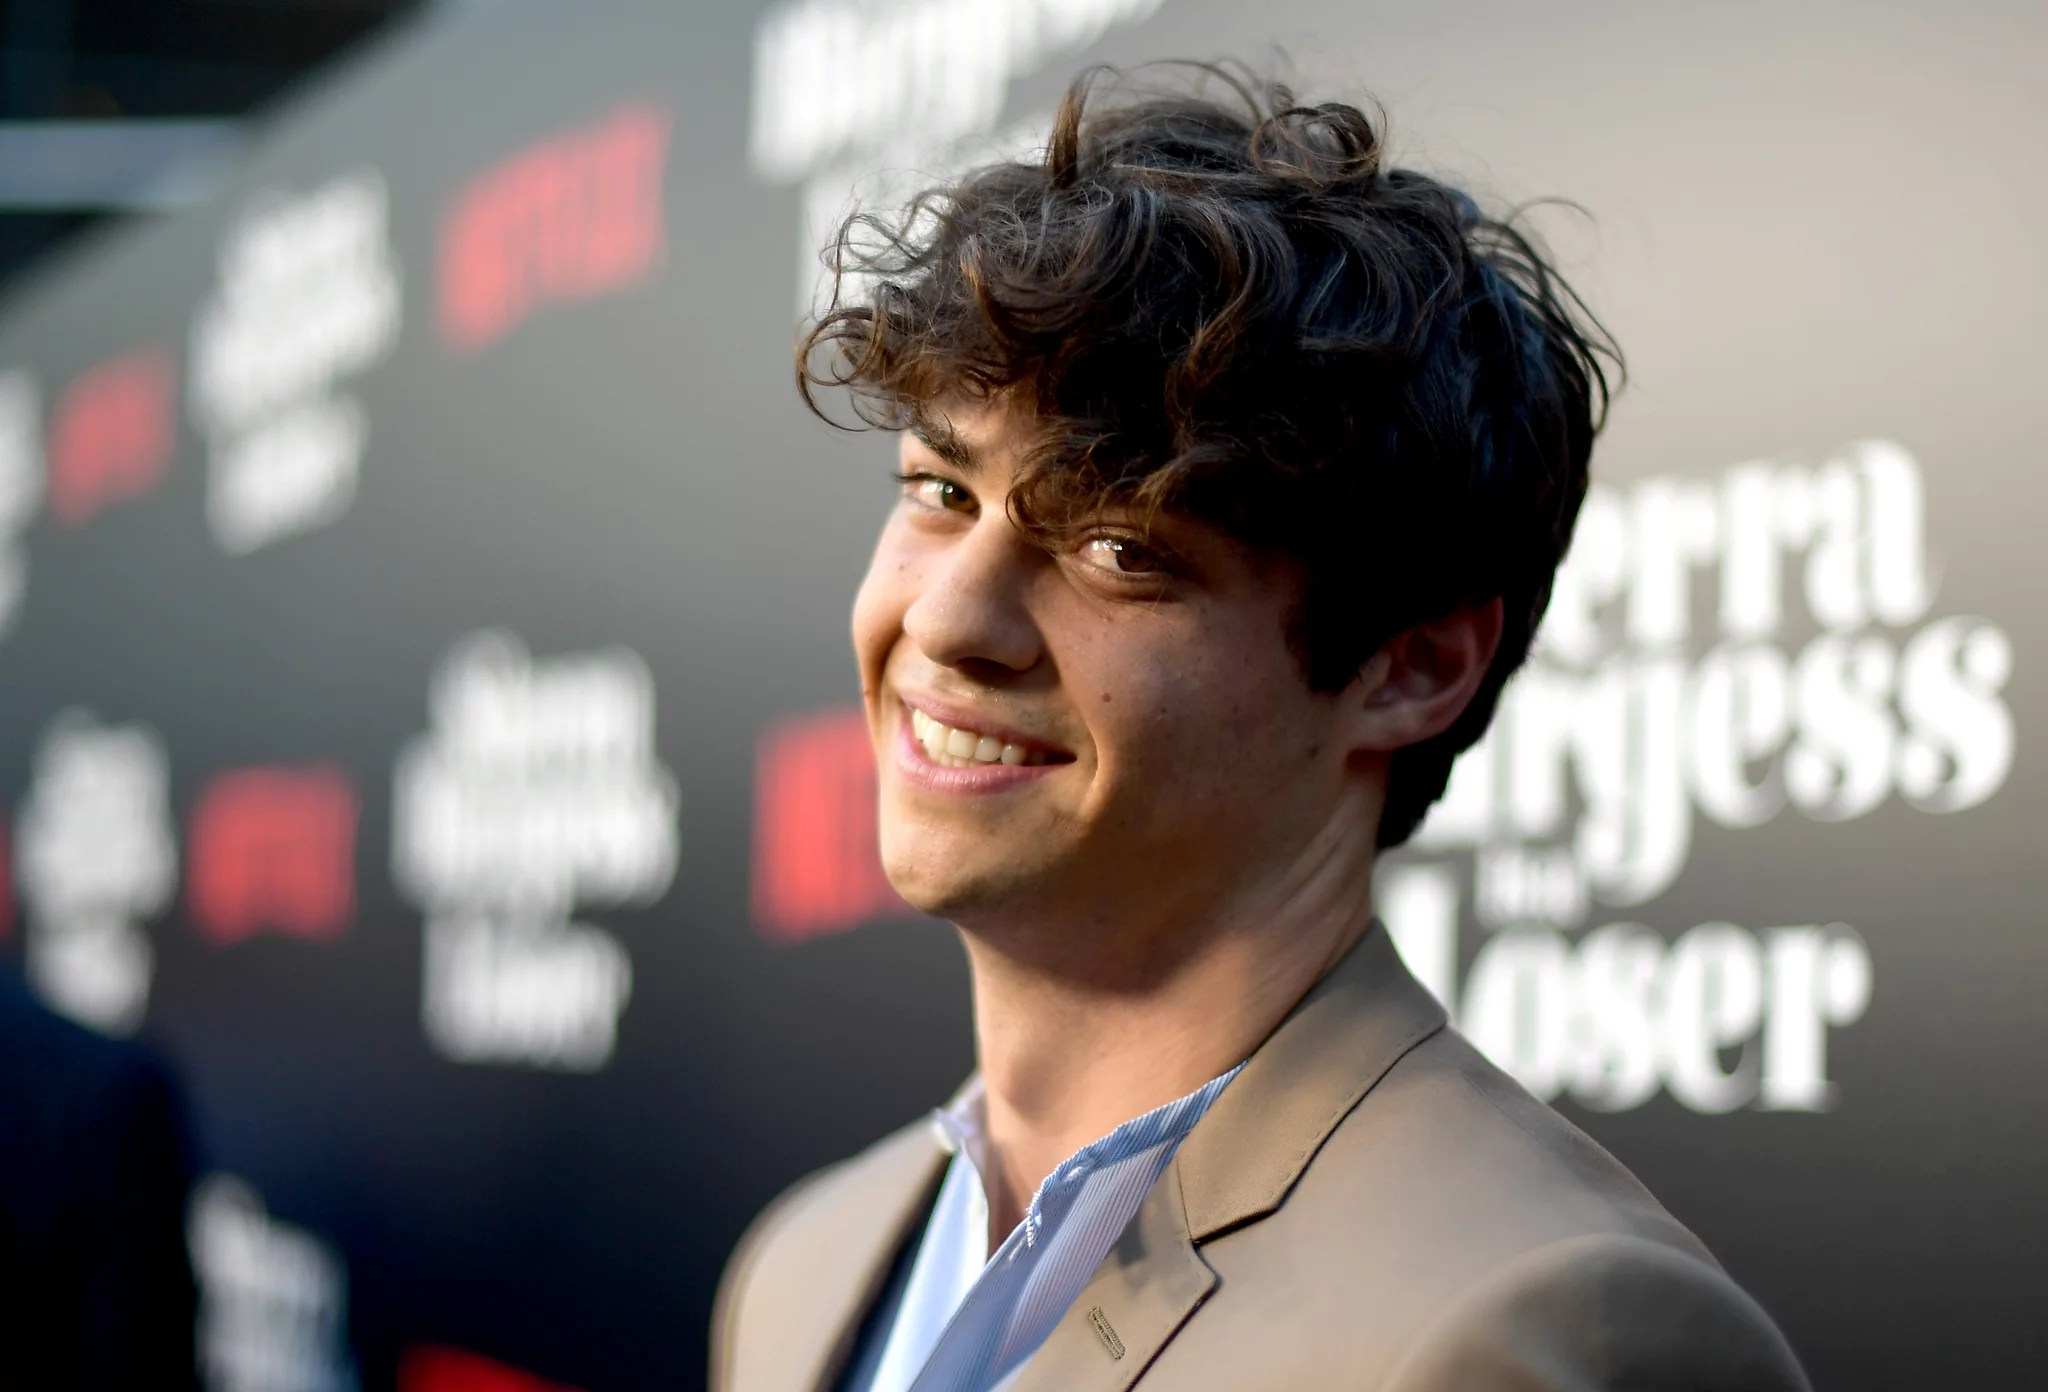 who is noah centineo